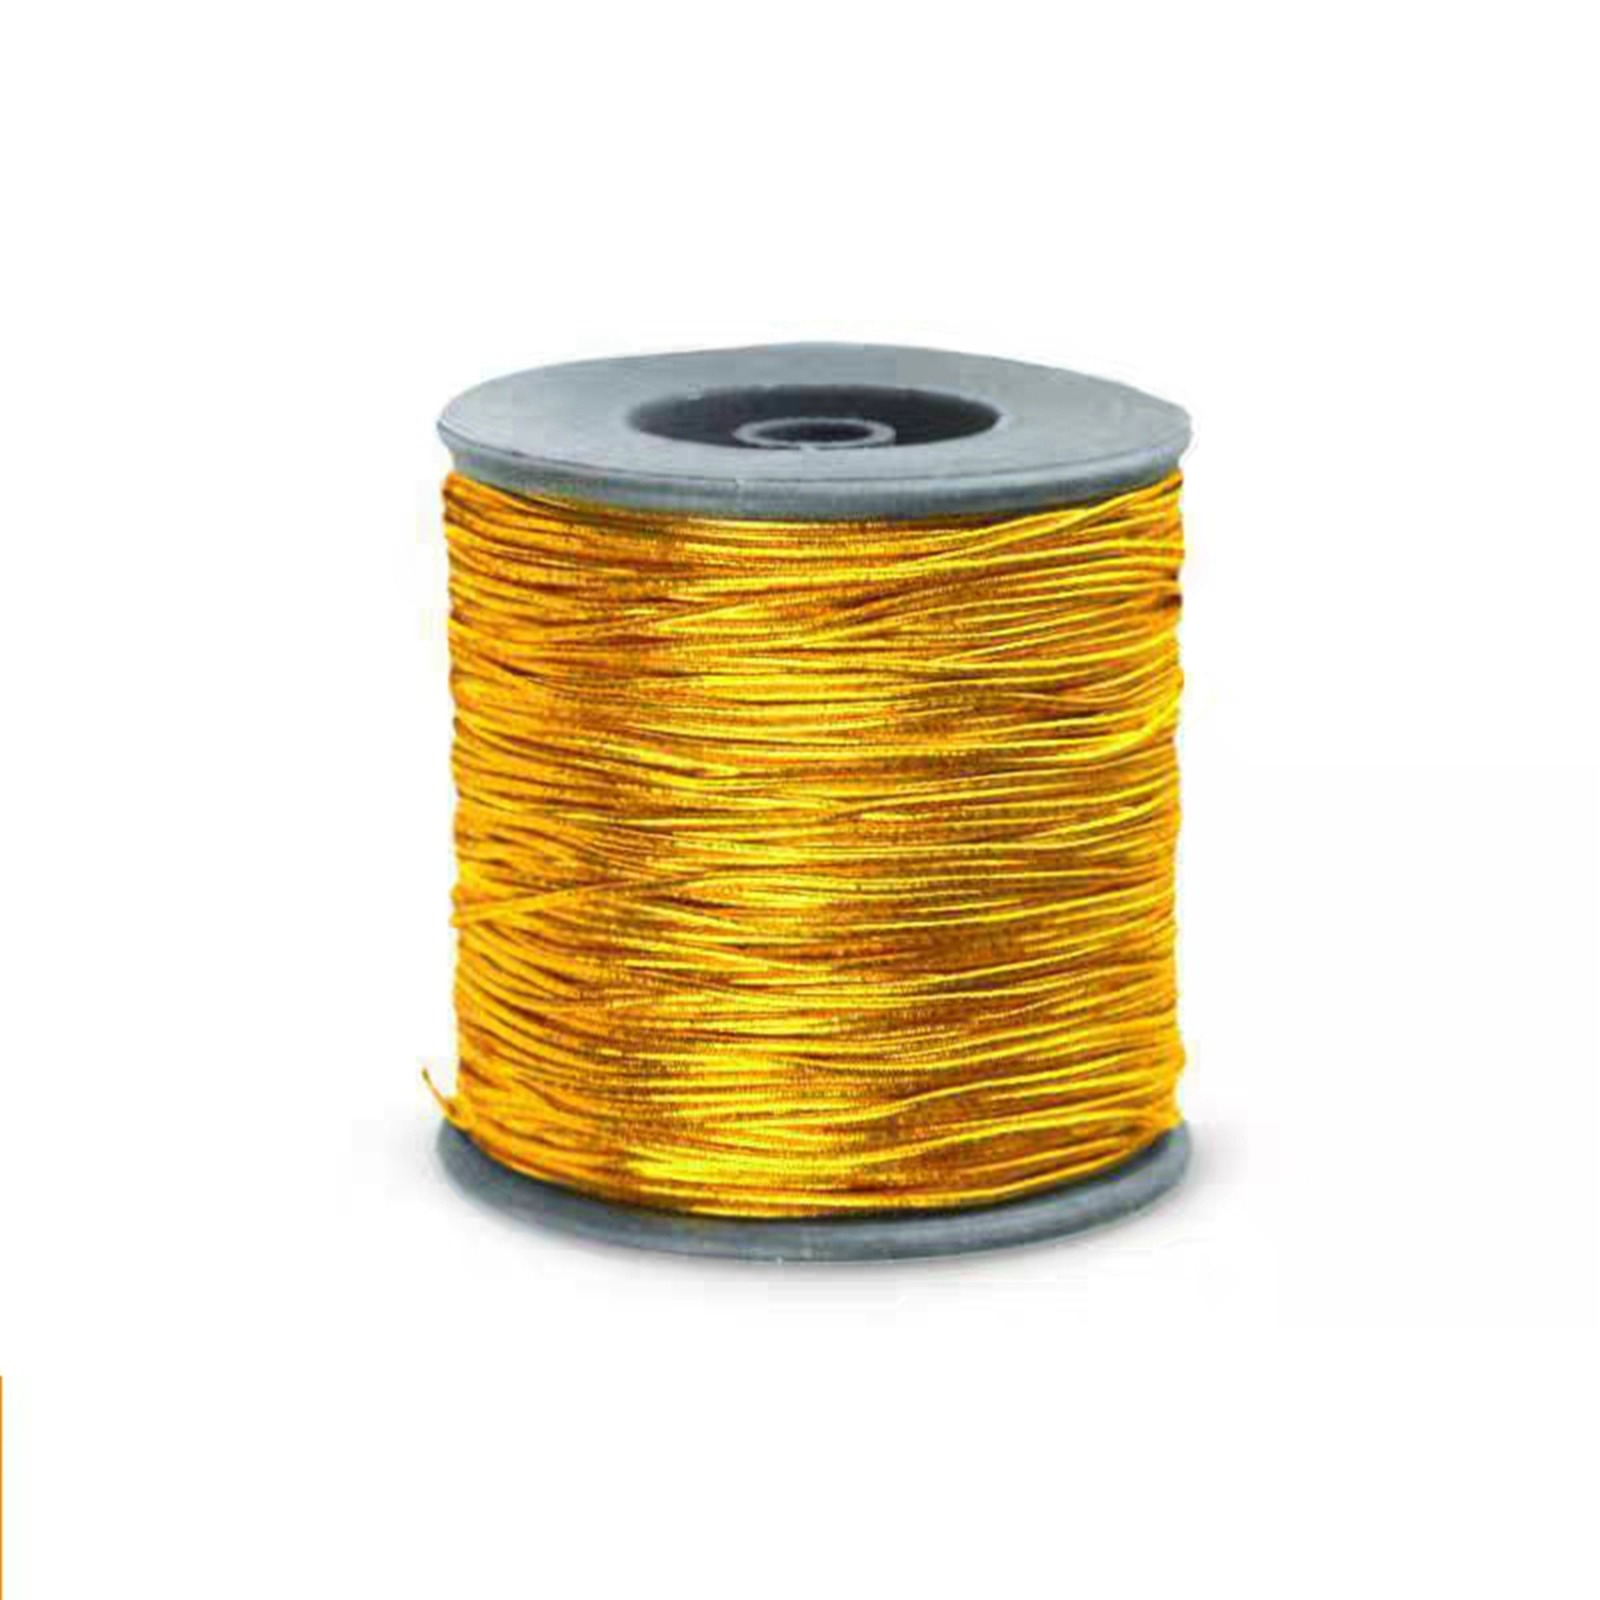 Stretchable String Gold 100m